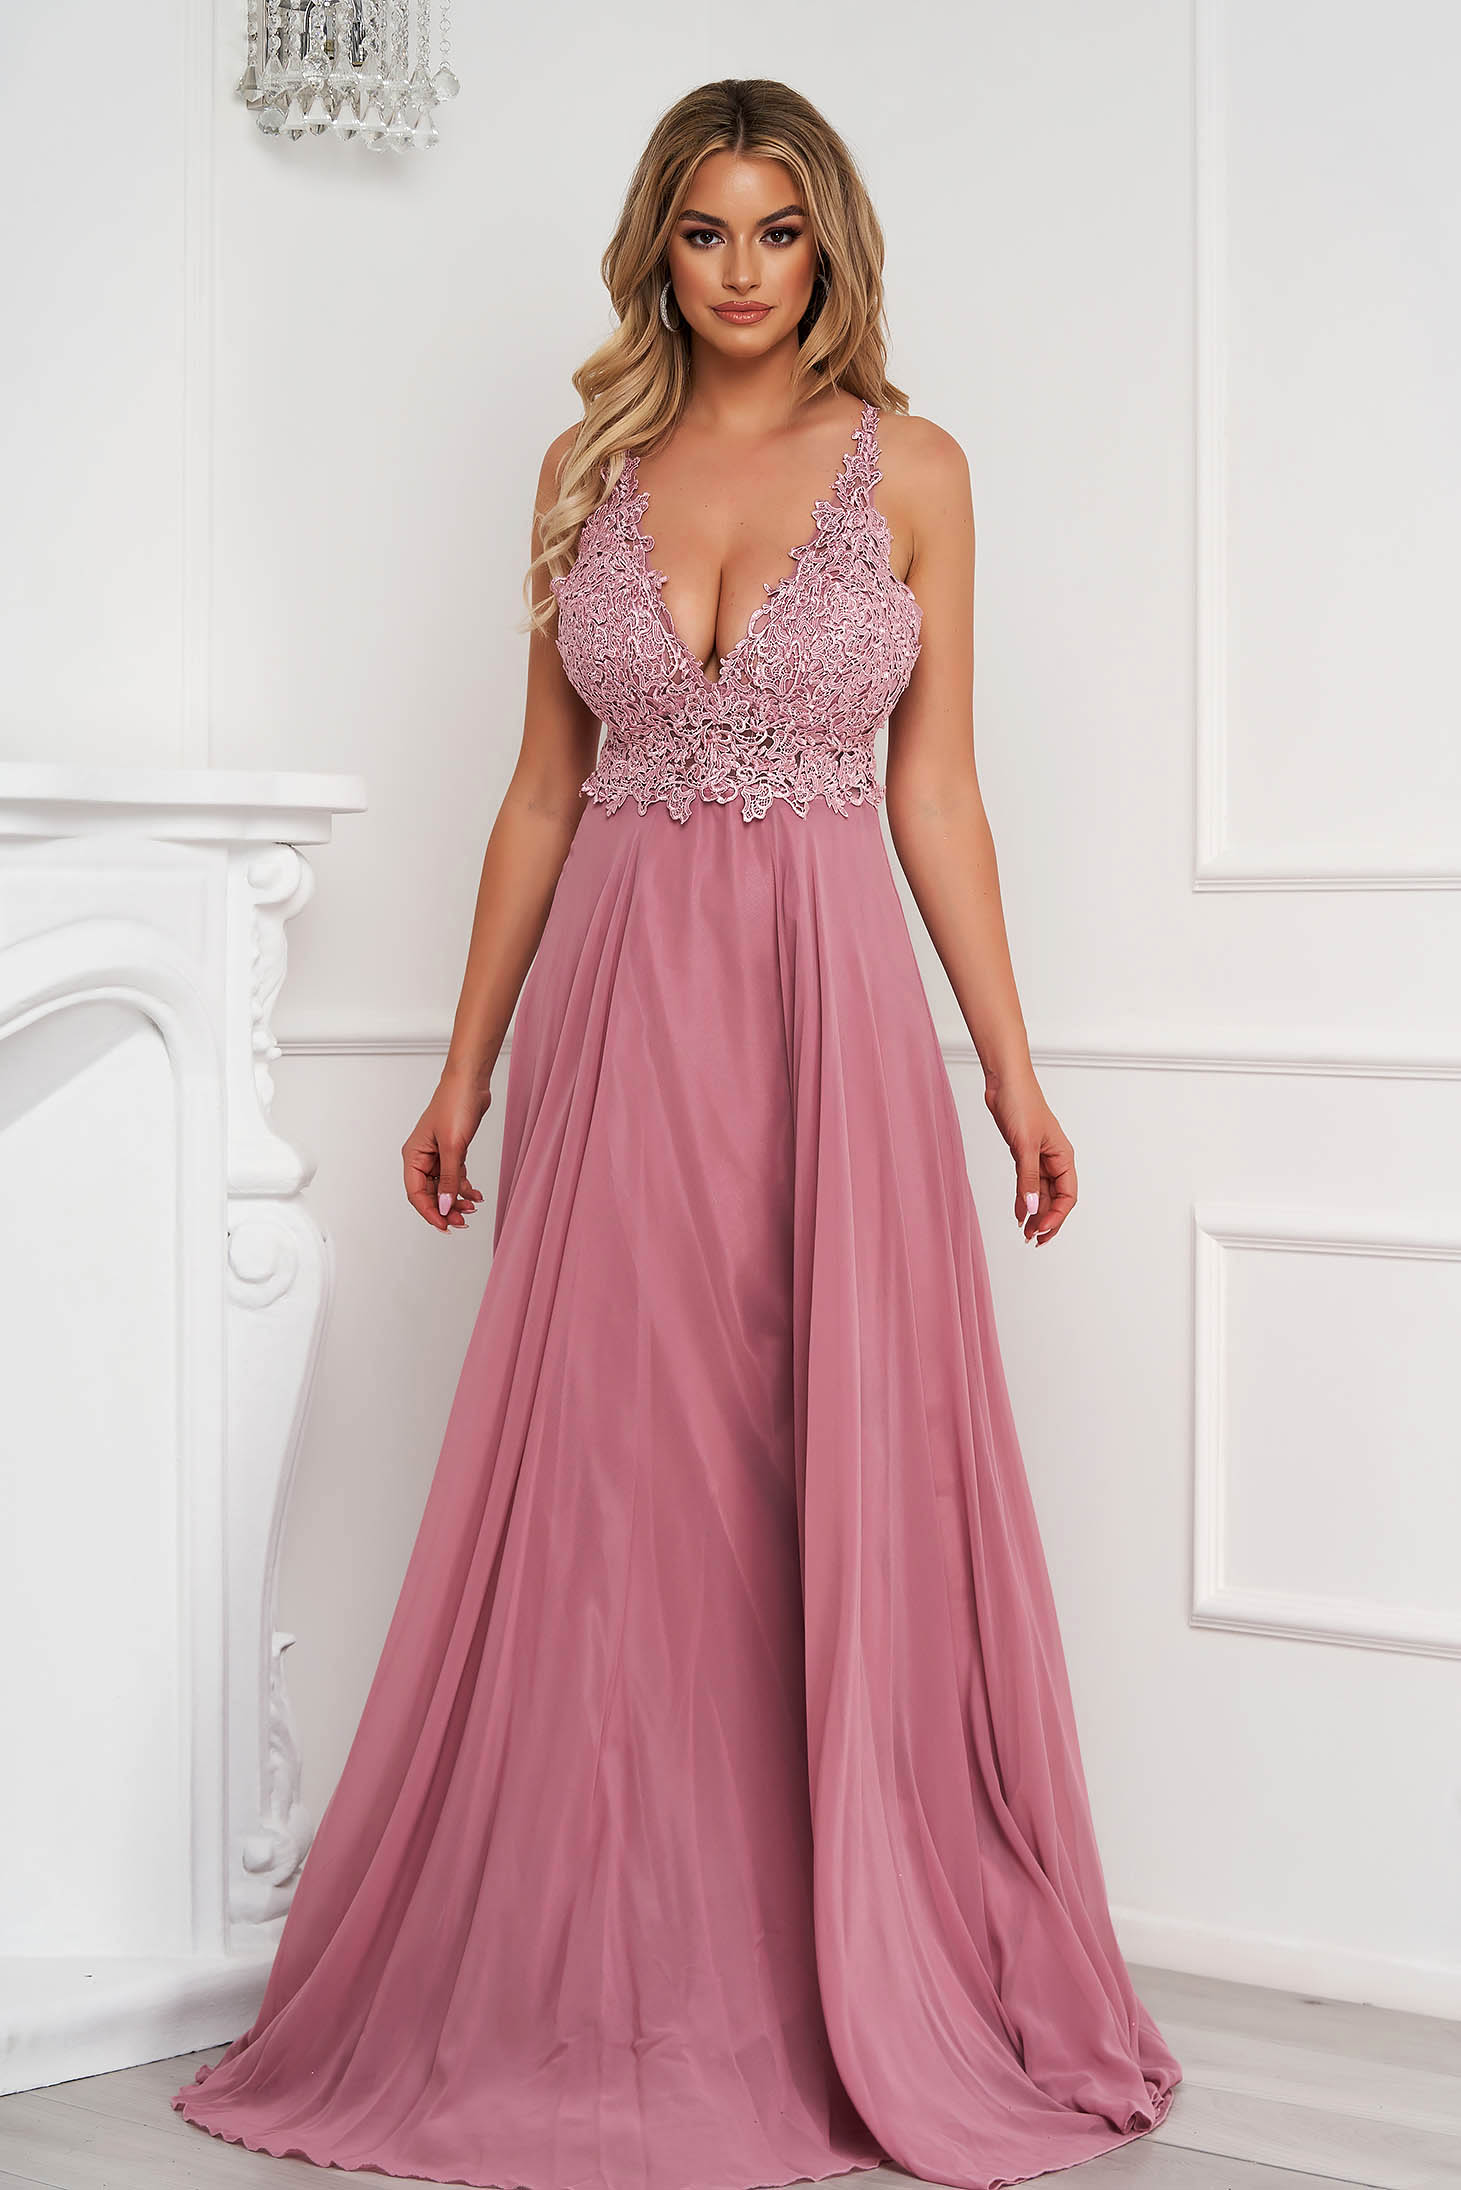 Lightpink dress long occasional from veil fabric bare back with push-up cups